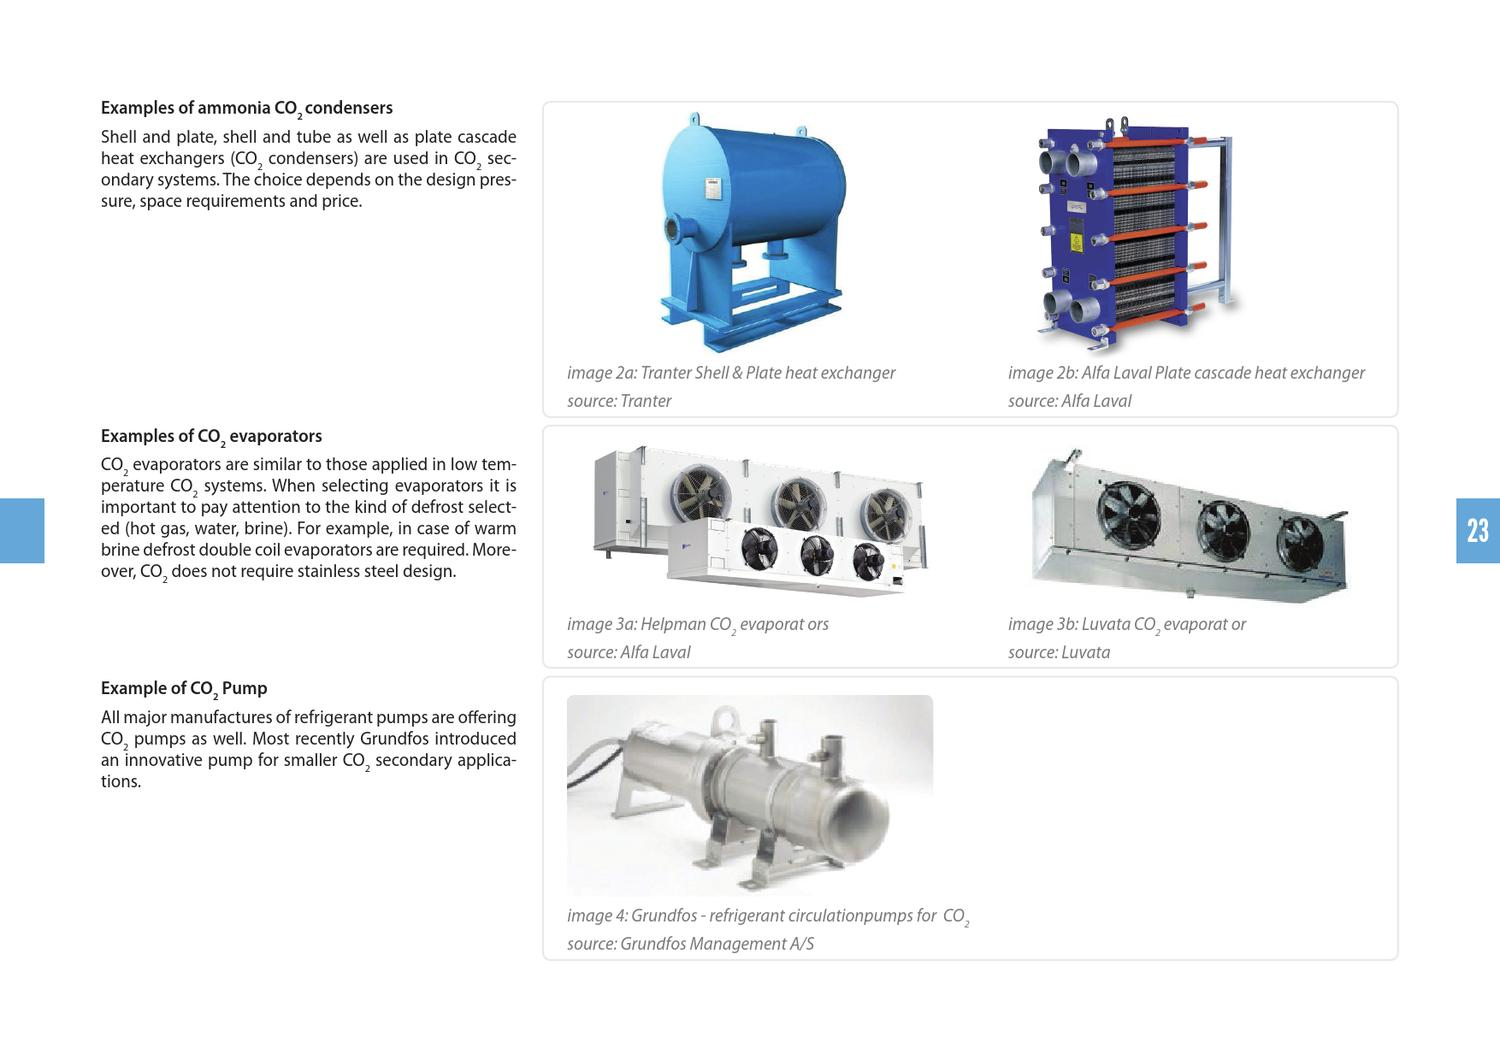 Examples of NH3 / CO2 Secondary Systems for Cold Store Operators by